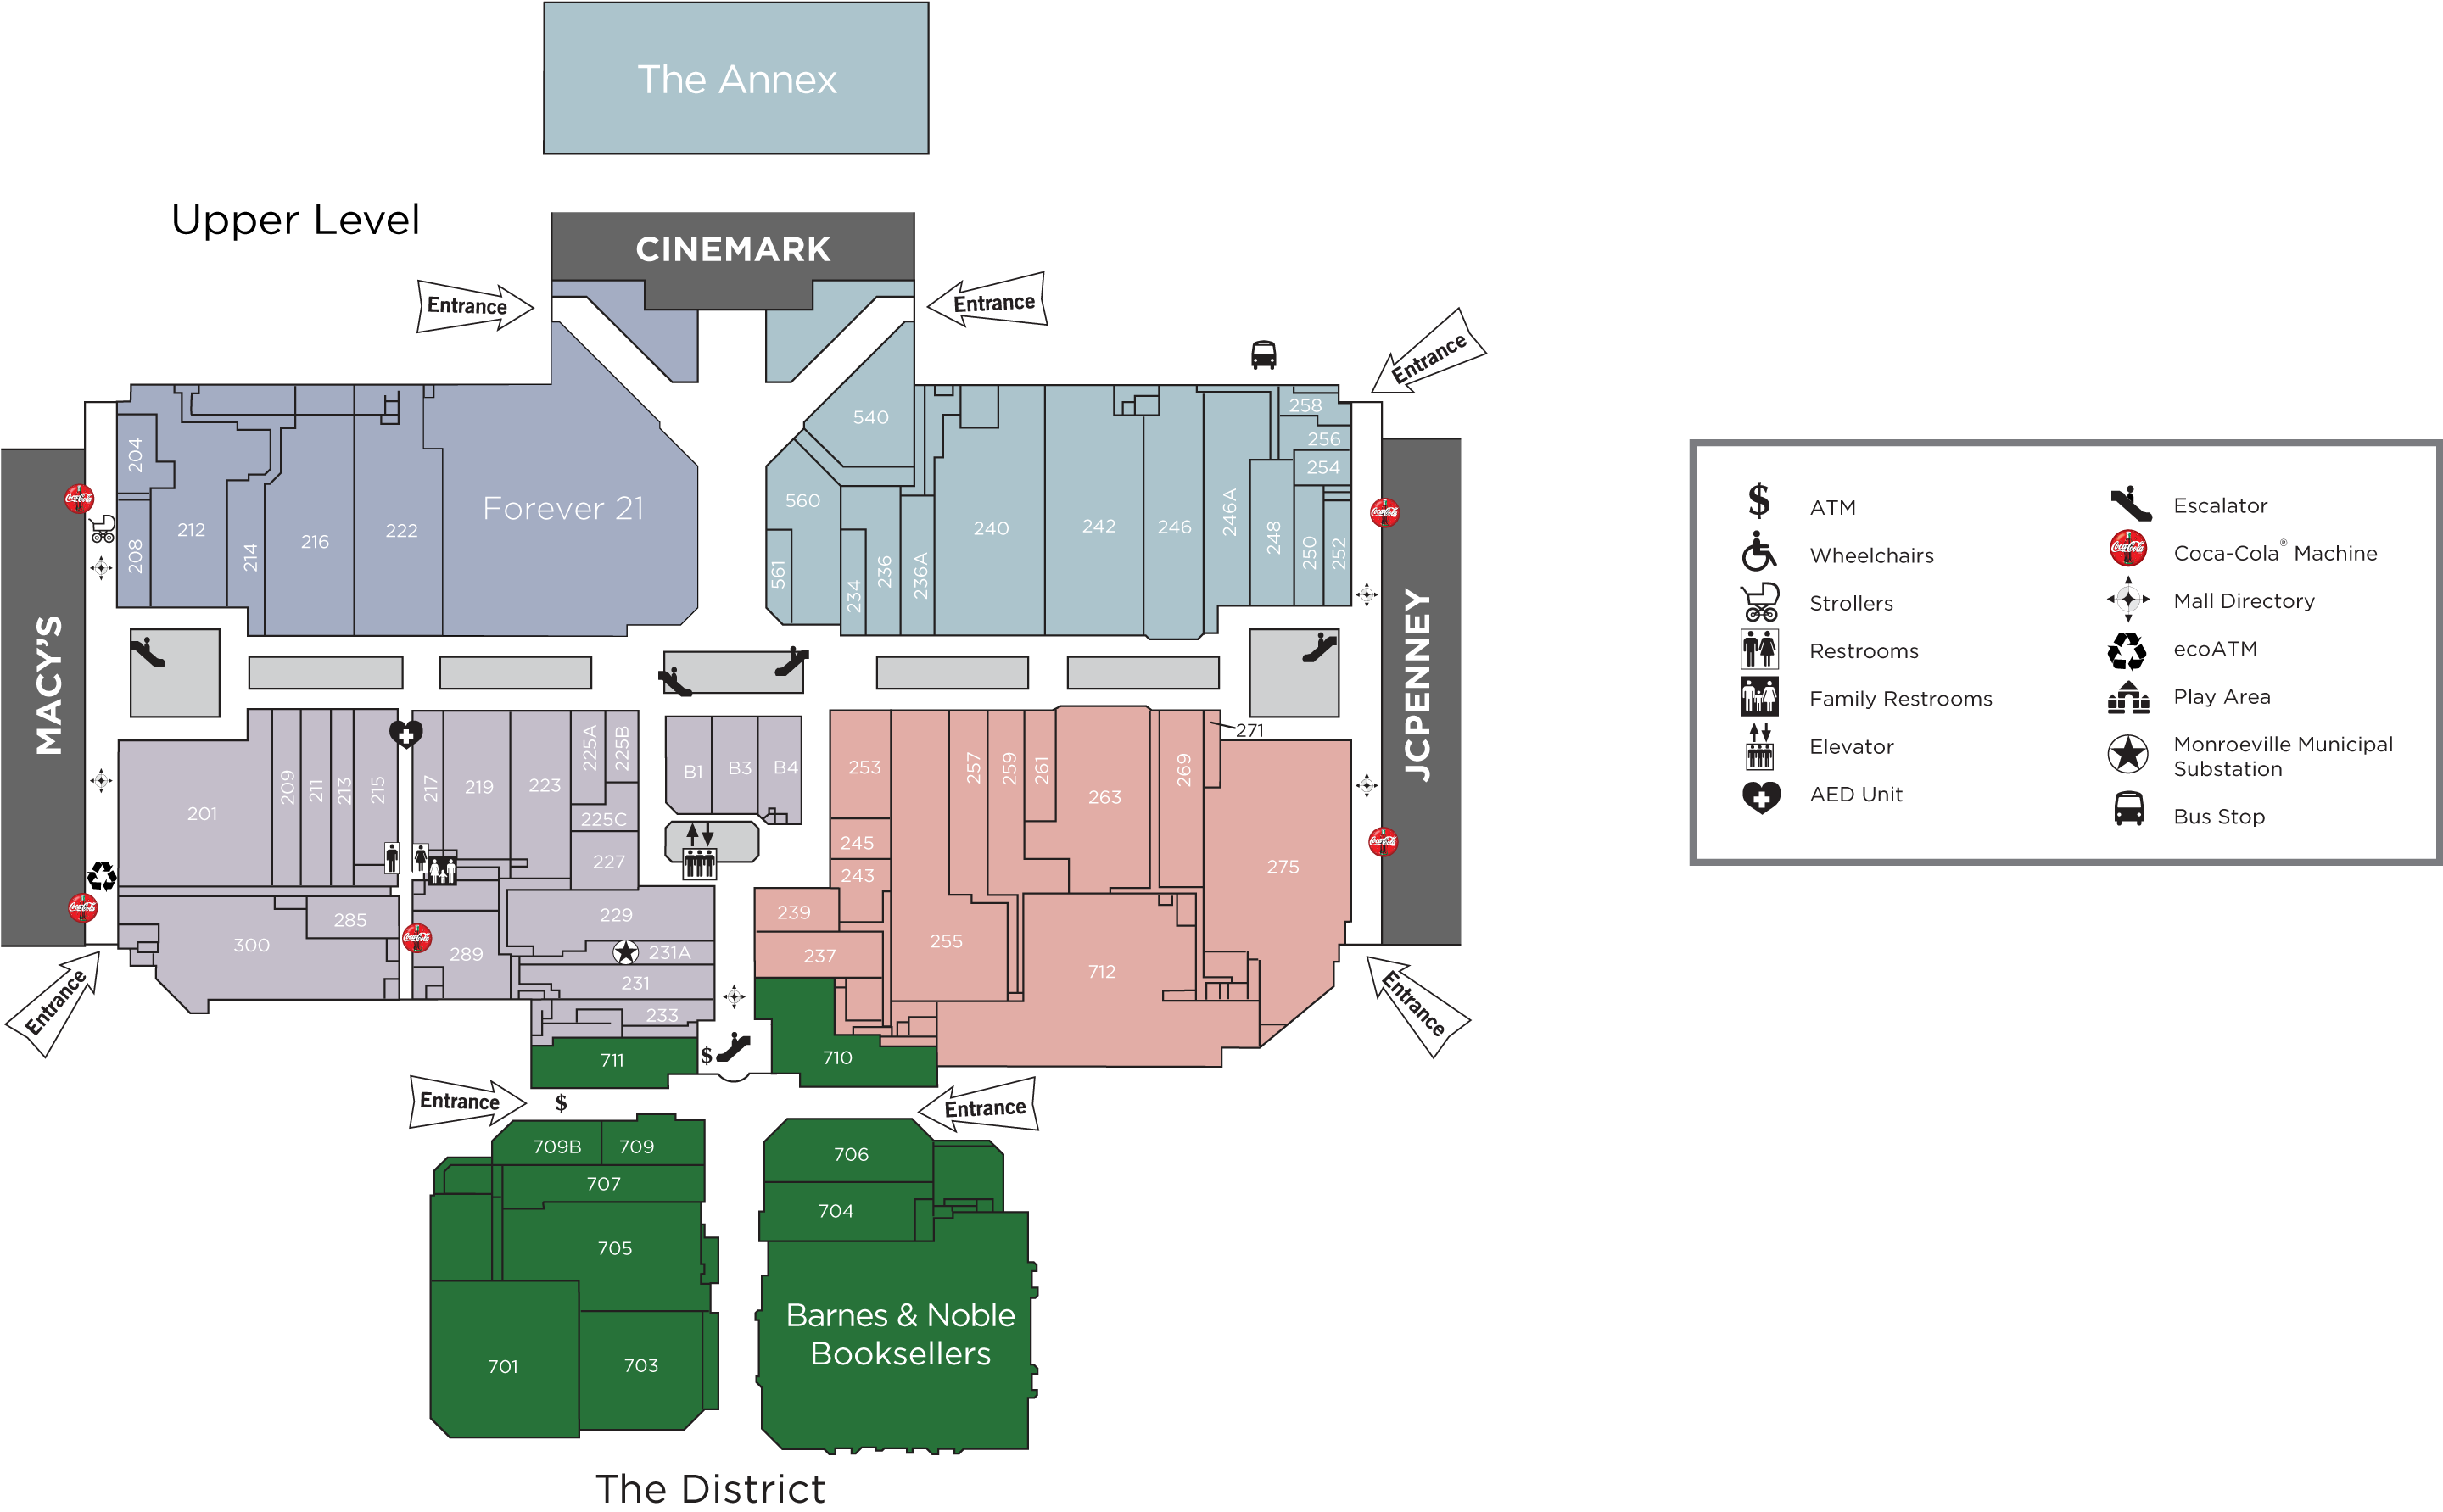 upper level directory map image